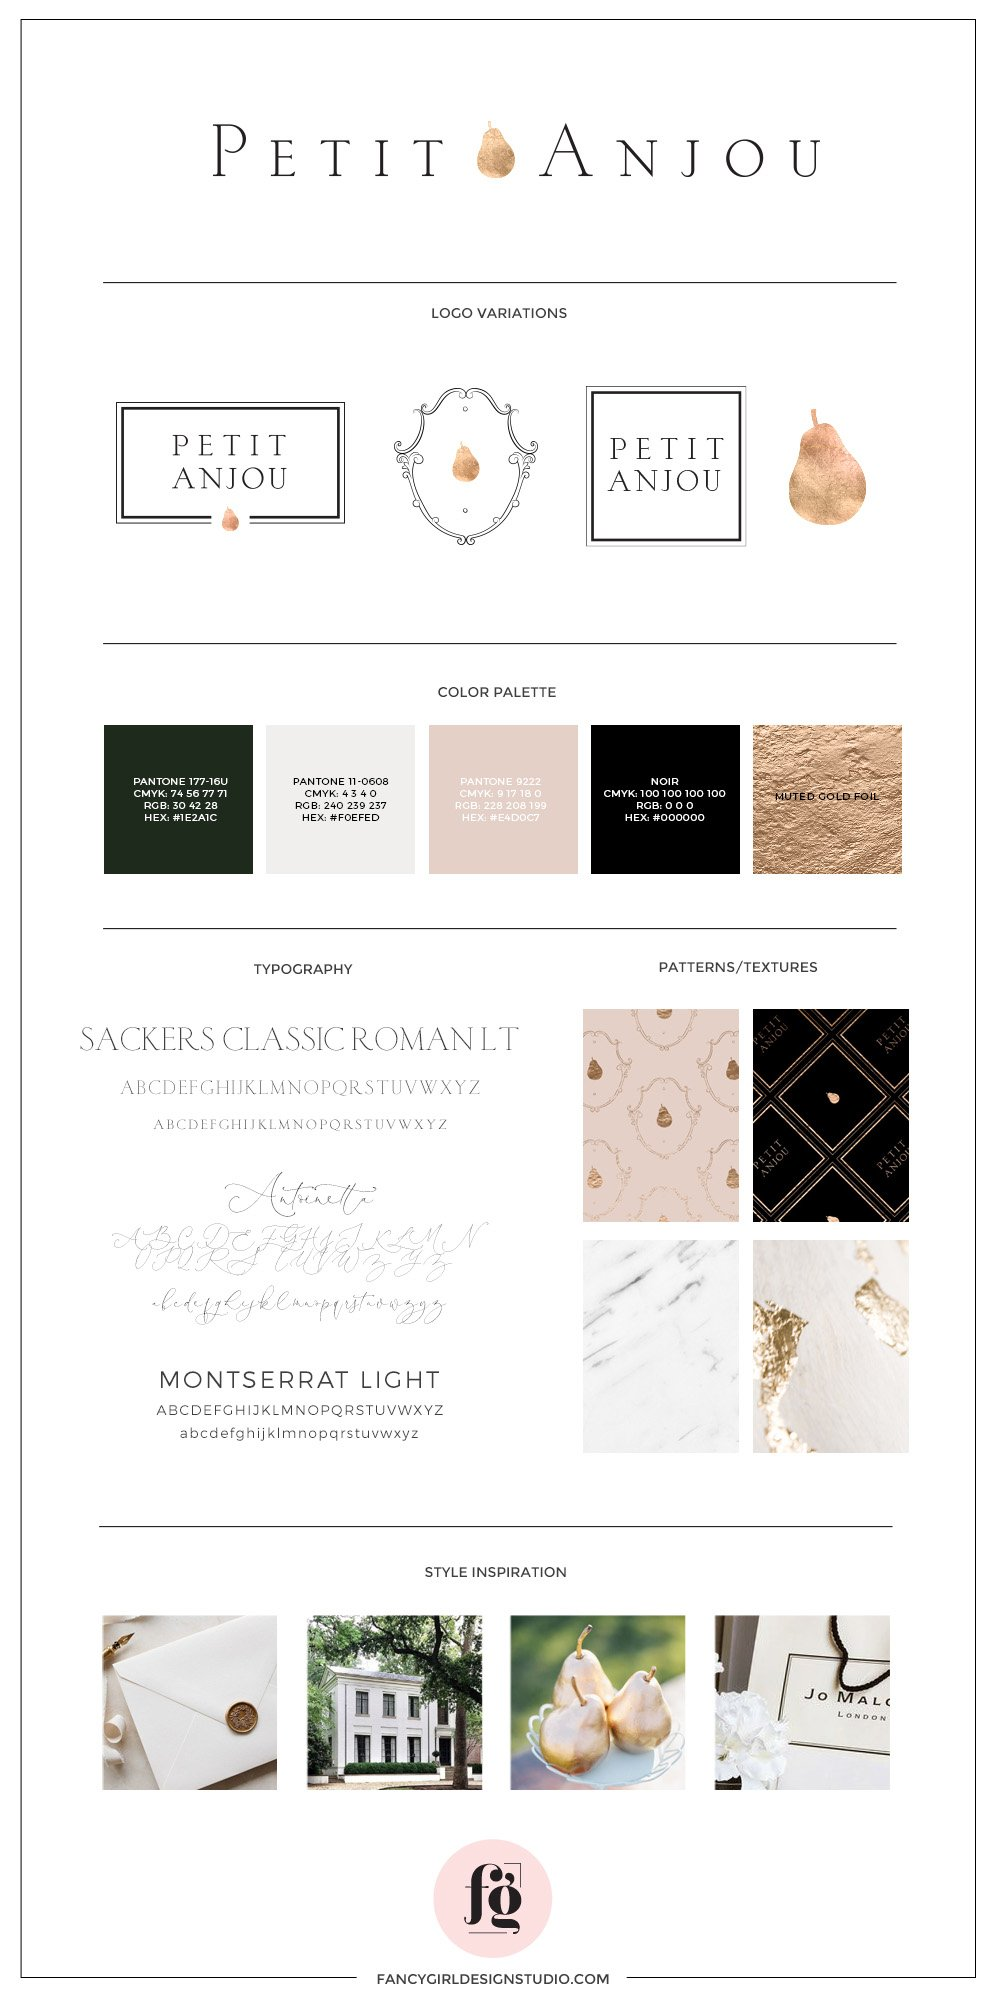 Brand Guide for Petit Anjou by Fancy Girl Design Studio | luxurious, timeless, sophisticated, French-inspired branding